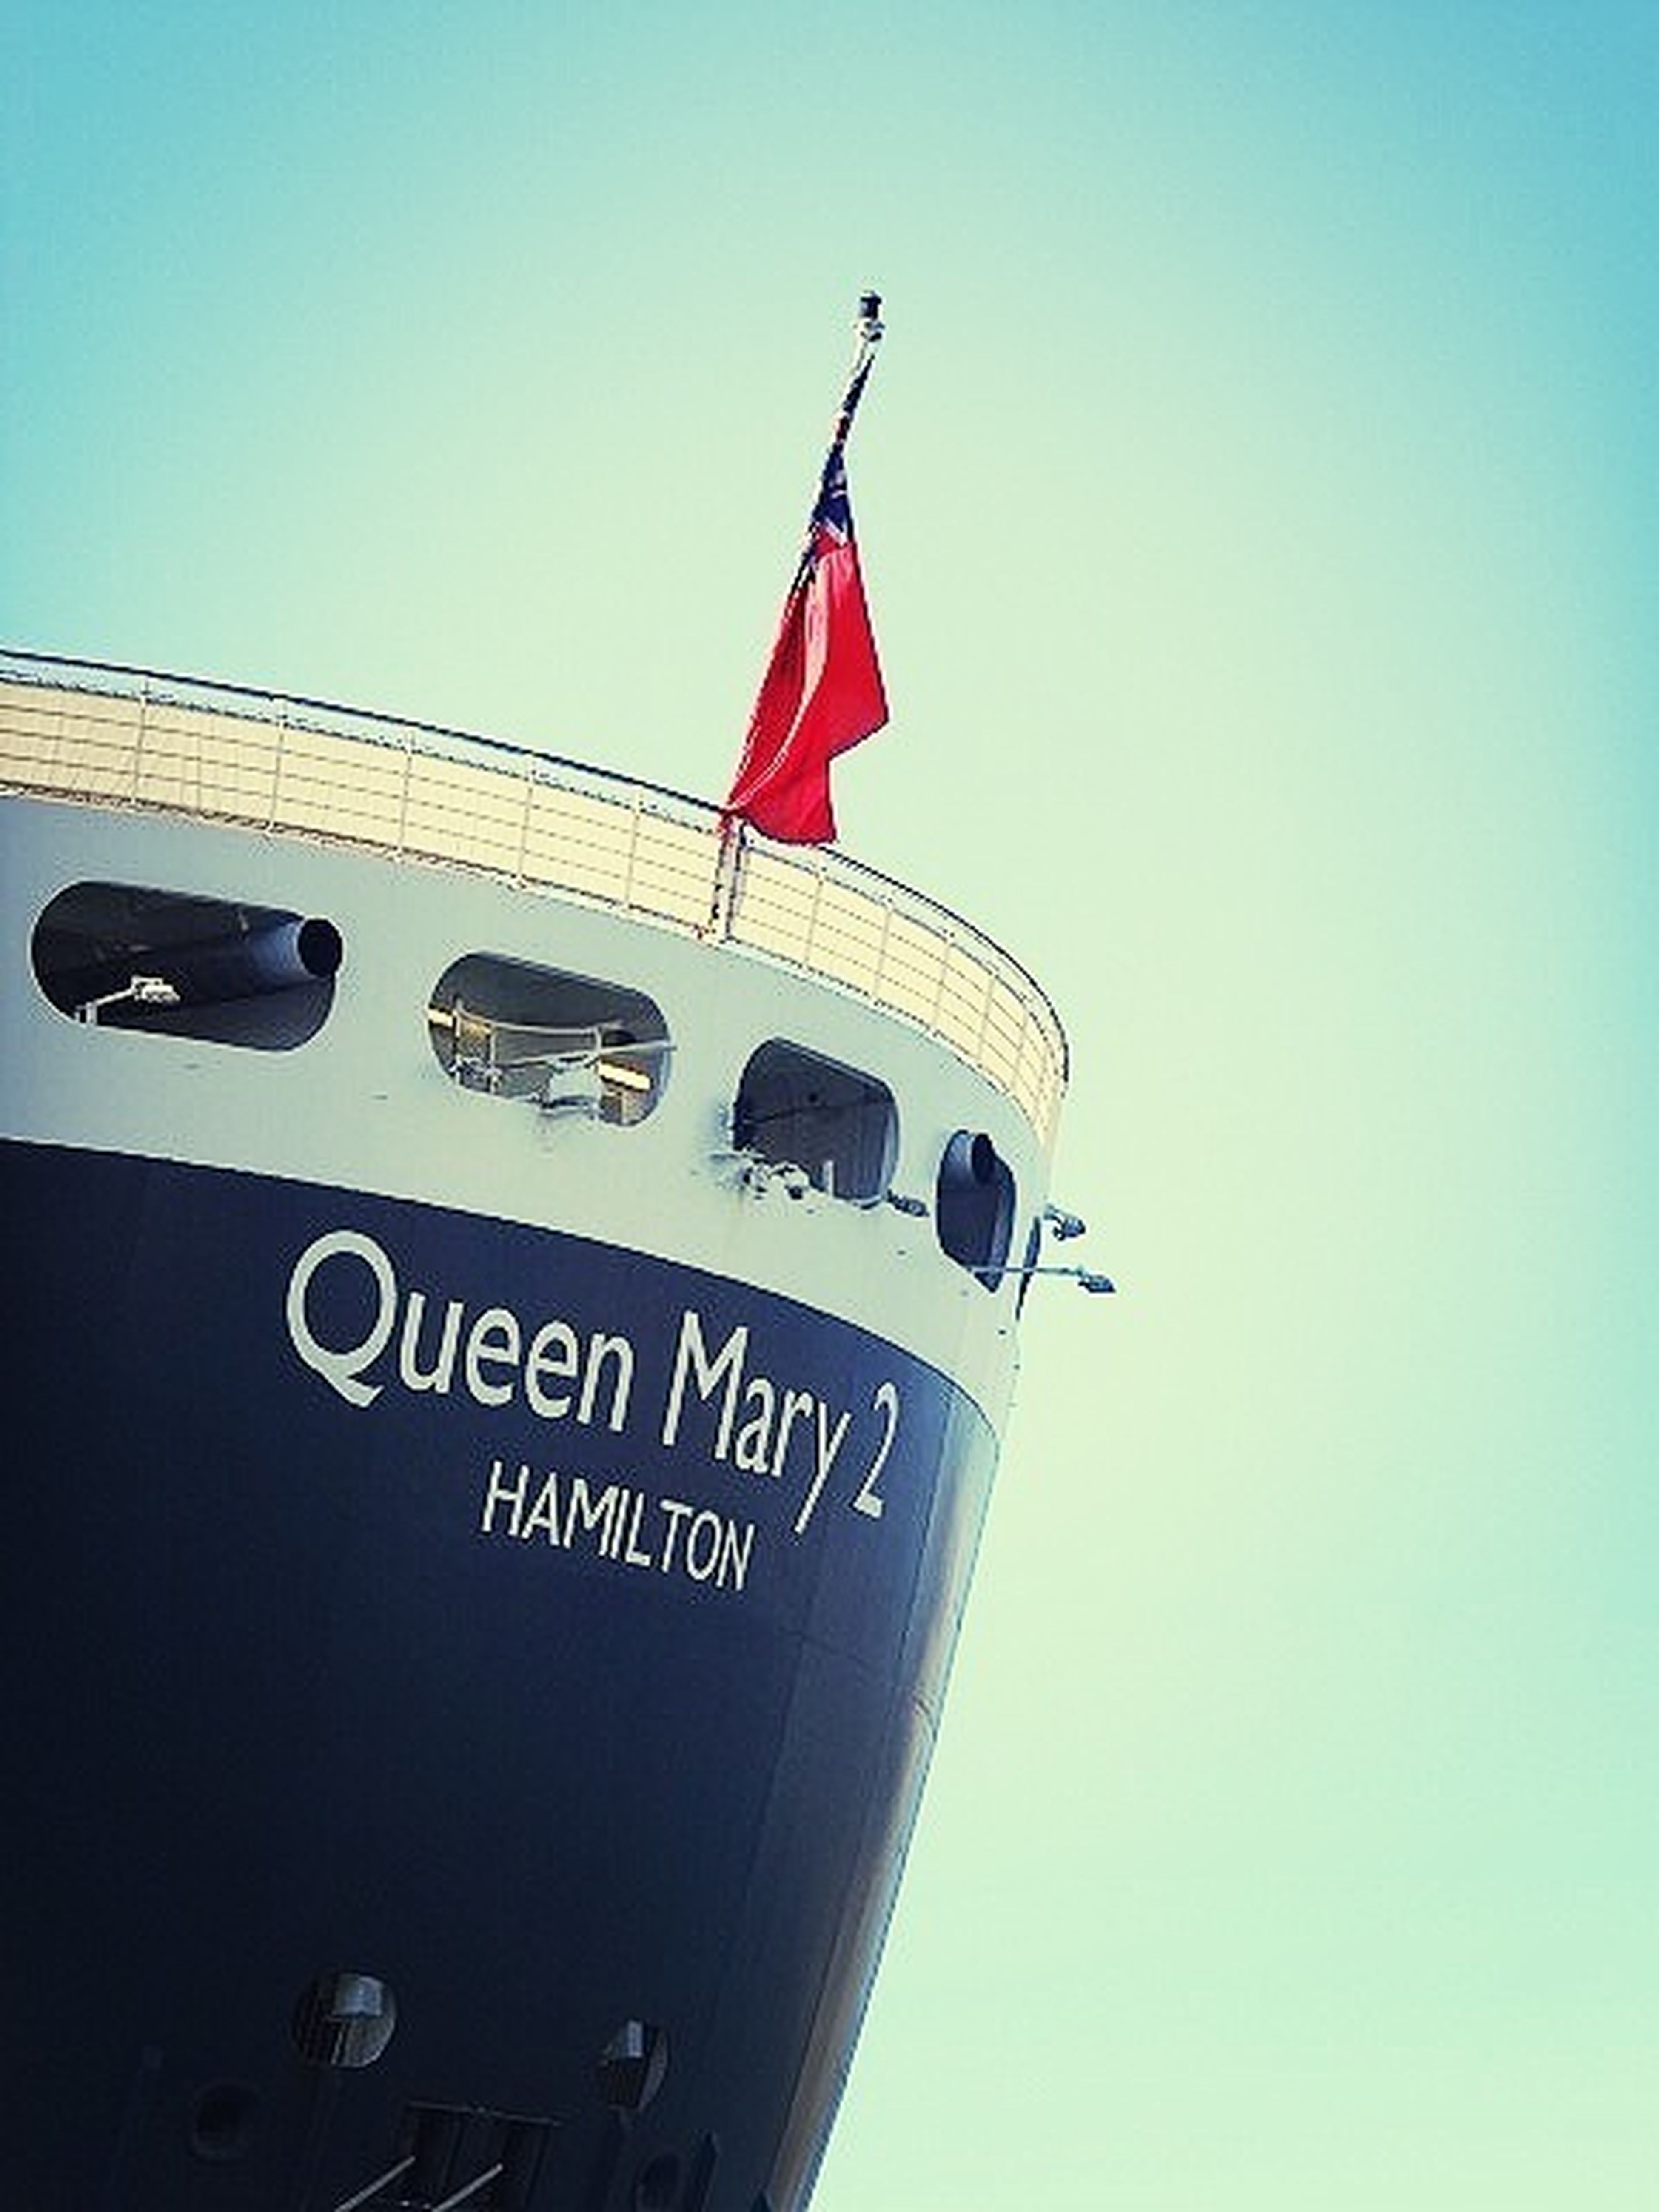 Queen Mary II at Sydney Harbour